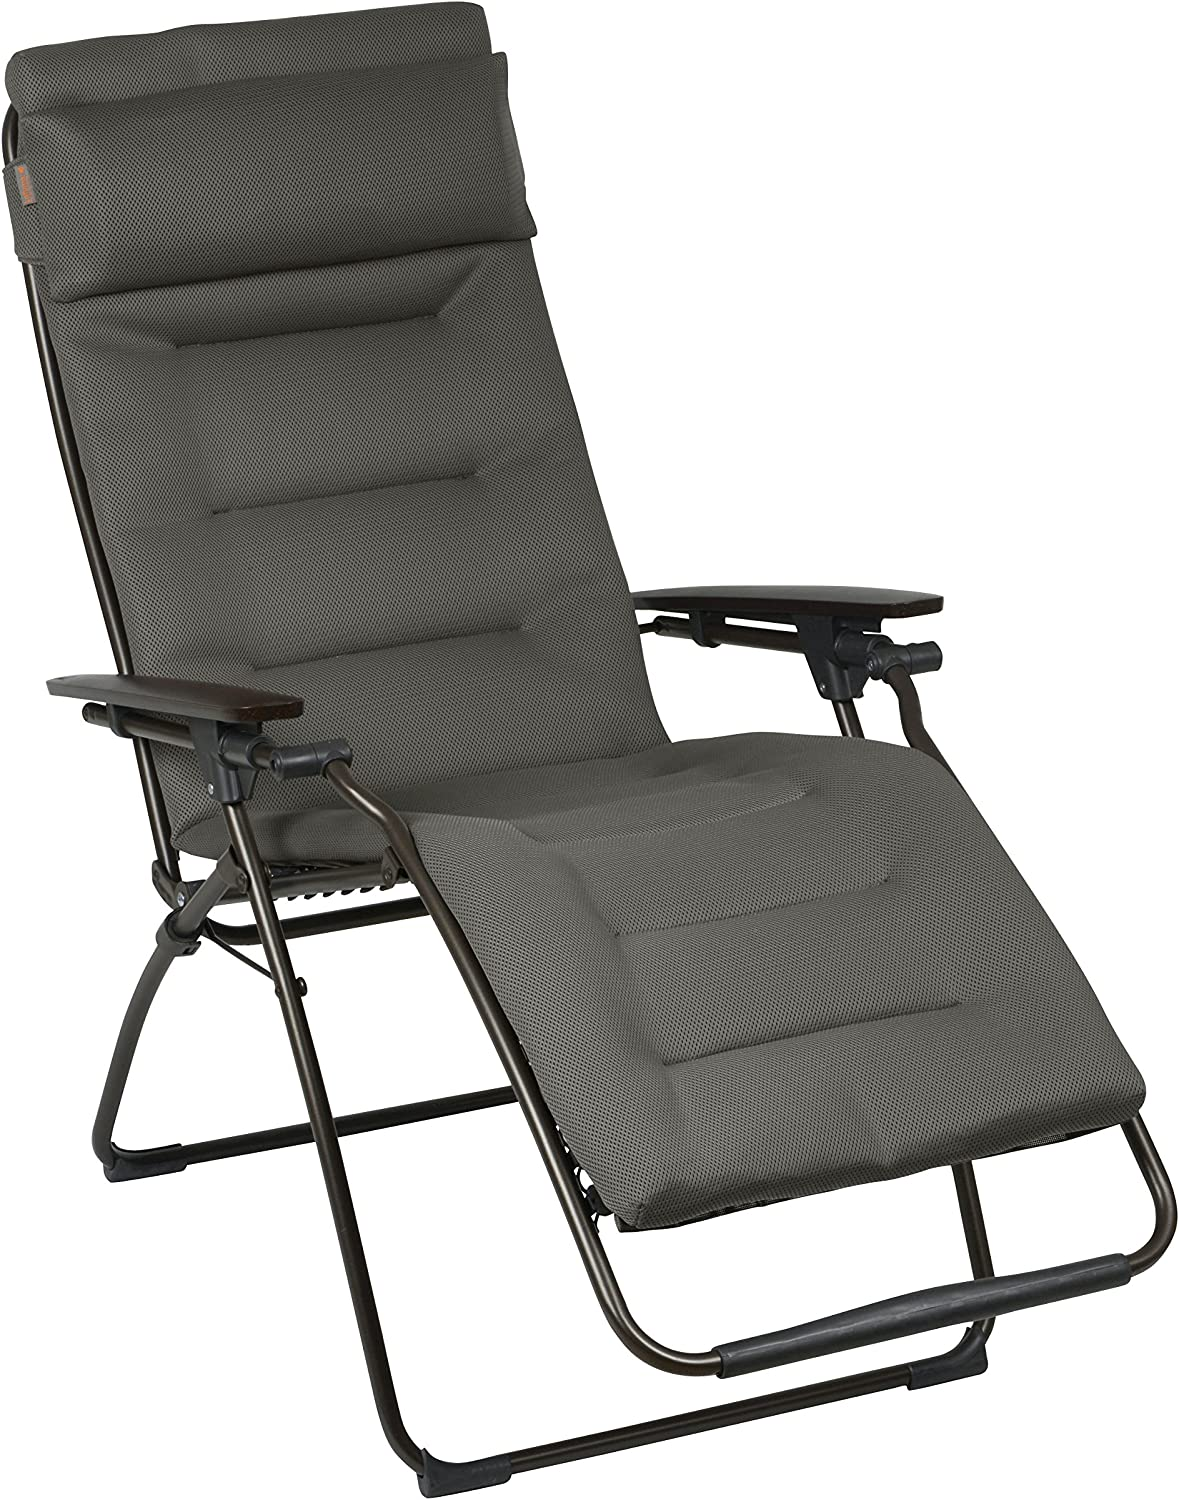 Lafuma Futura Air Comfort – Zero Gravity Recliner – Brown Frame – Taupe Air Comfort Fabric